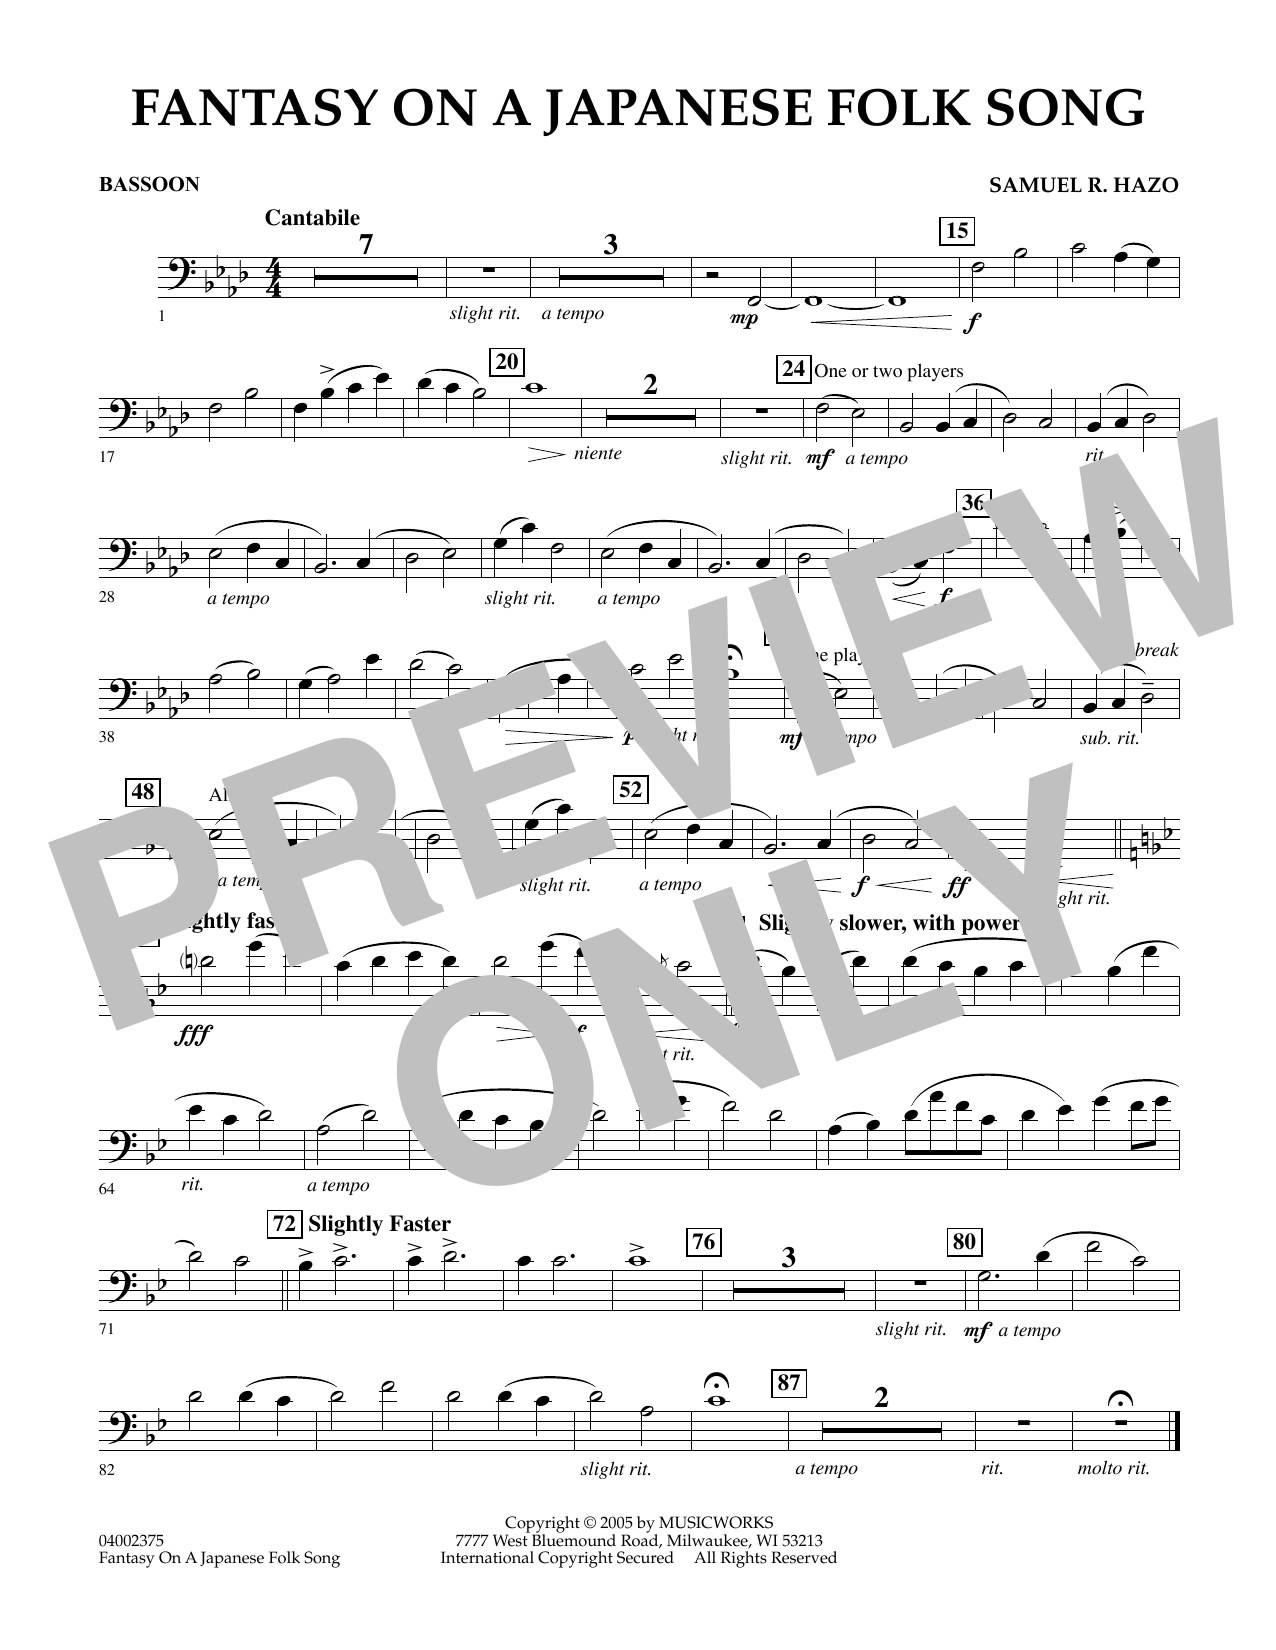 Download Samuel R. Hazo 'Fantasy On A Japanese Folk Song - Bassoon' Digital Sheet Music Notes & Chords and start playing in minutes